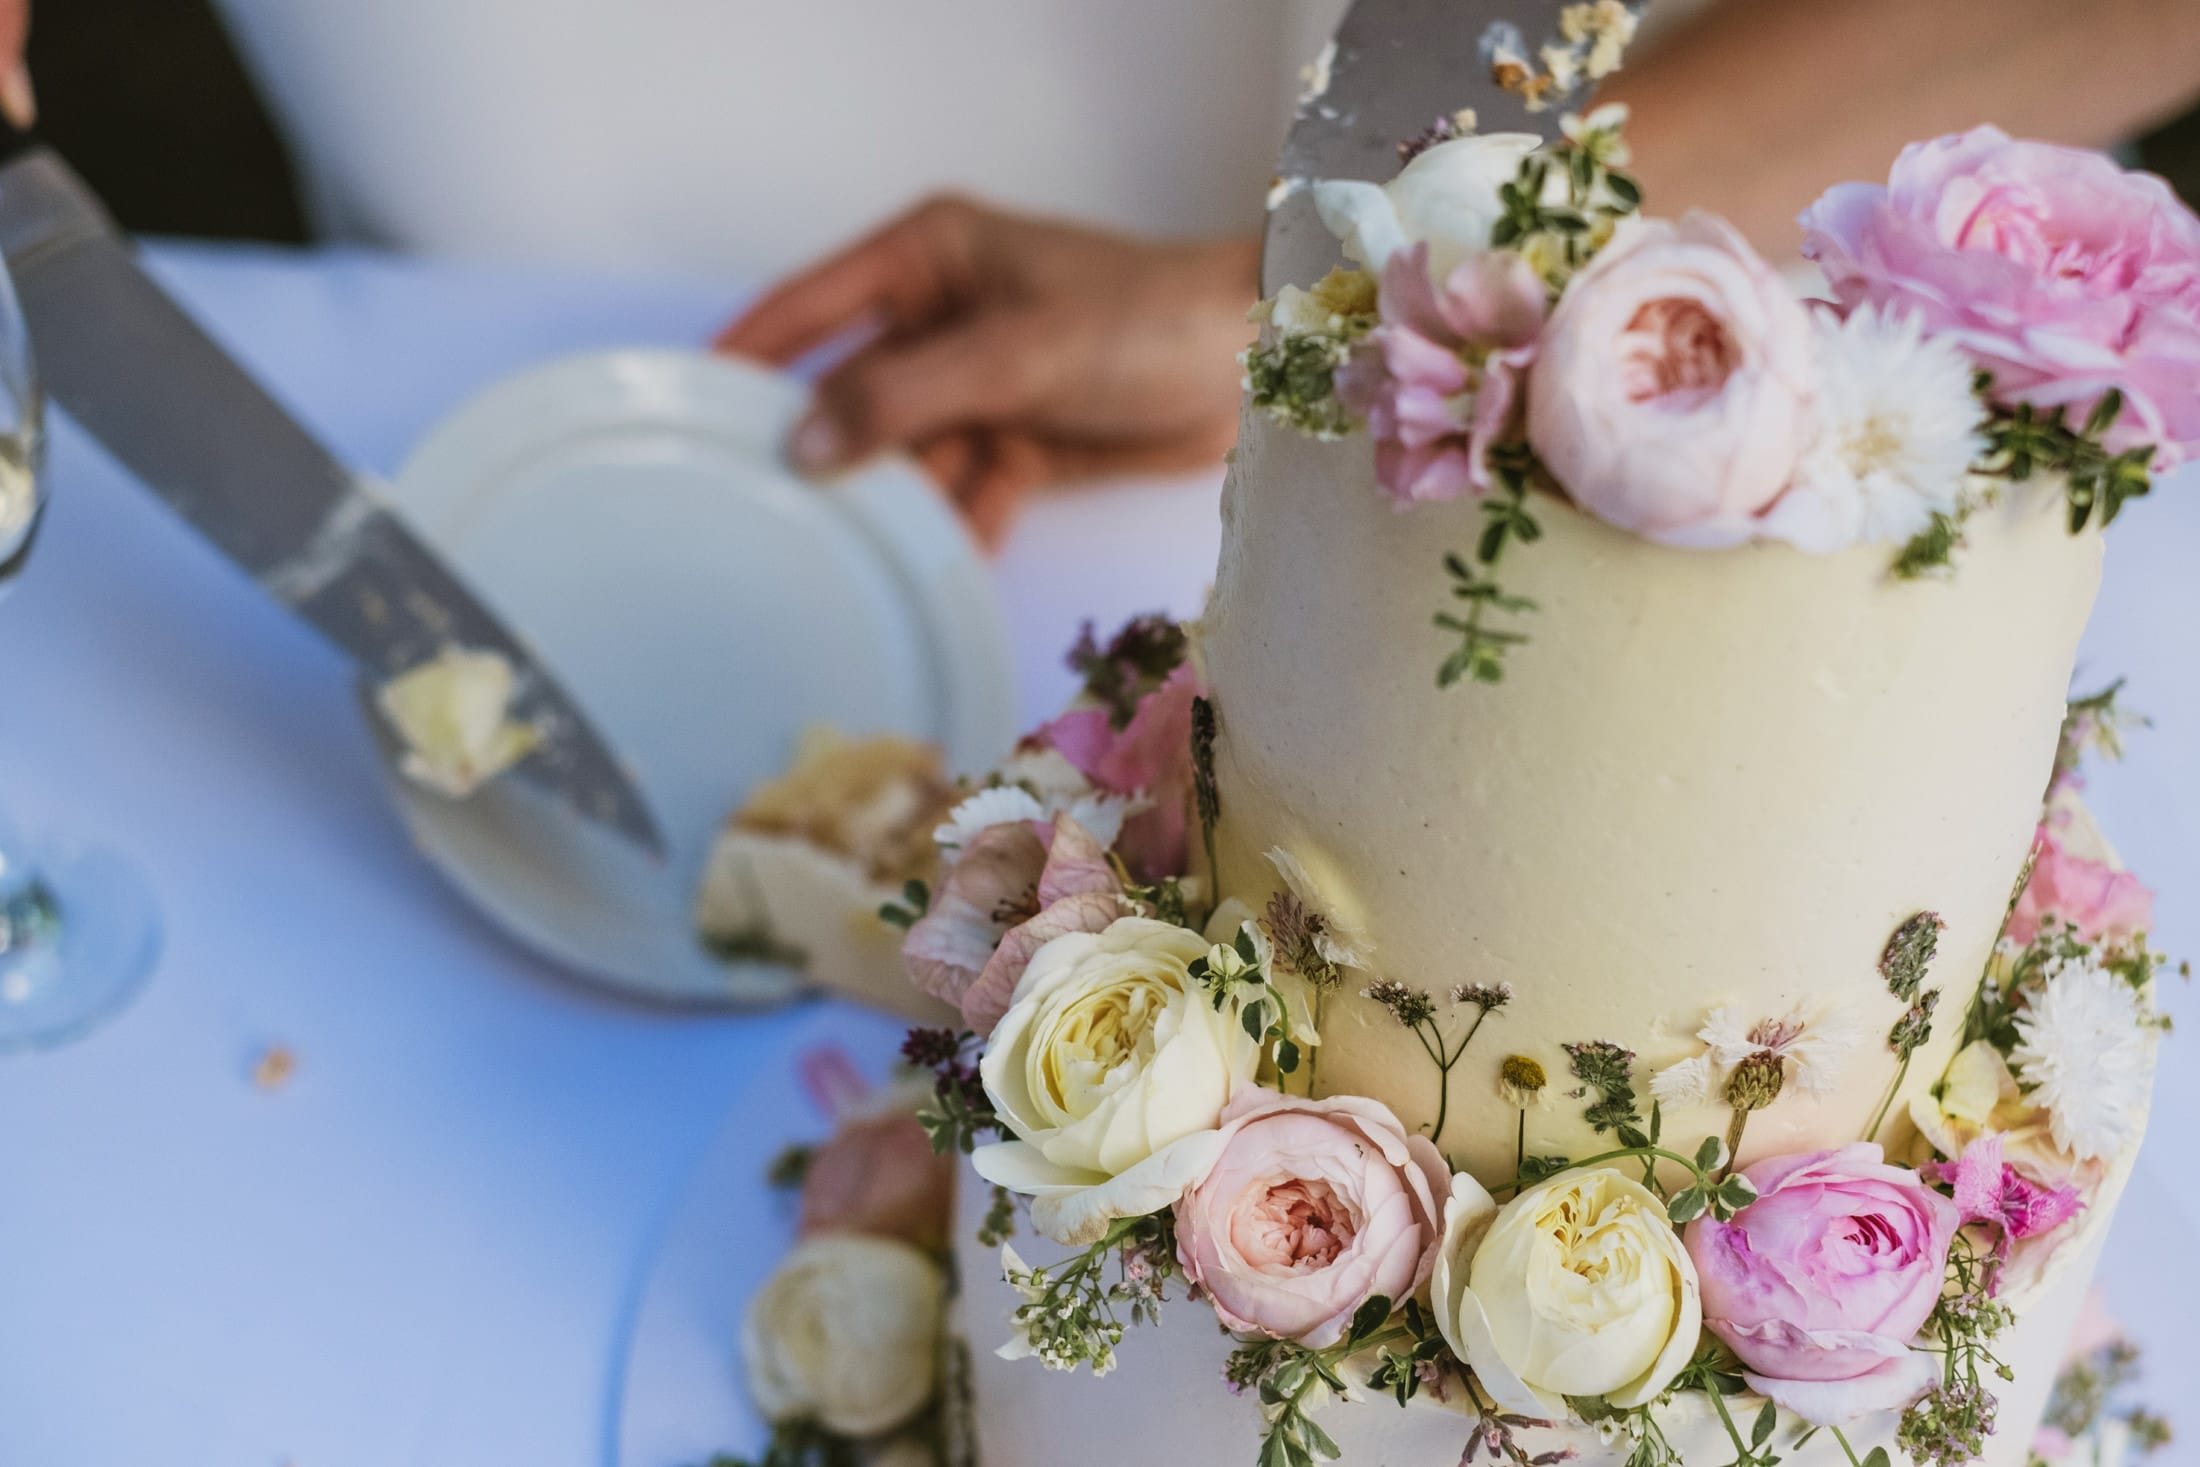 Documentary style photograph of a wedding cake as it is being sliced up and served to guests at a London micro wedding